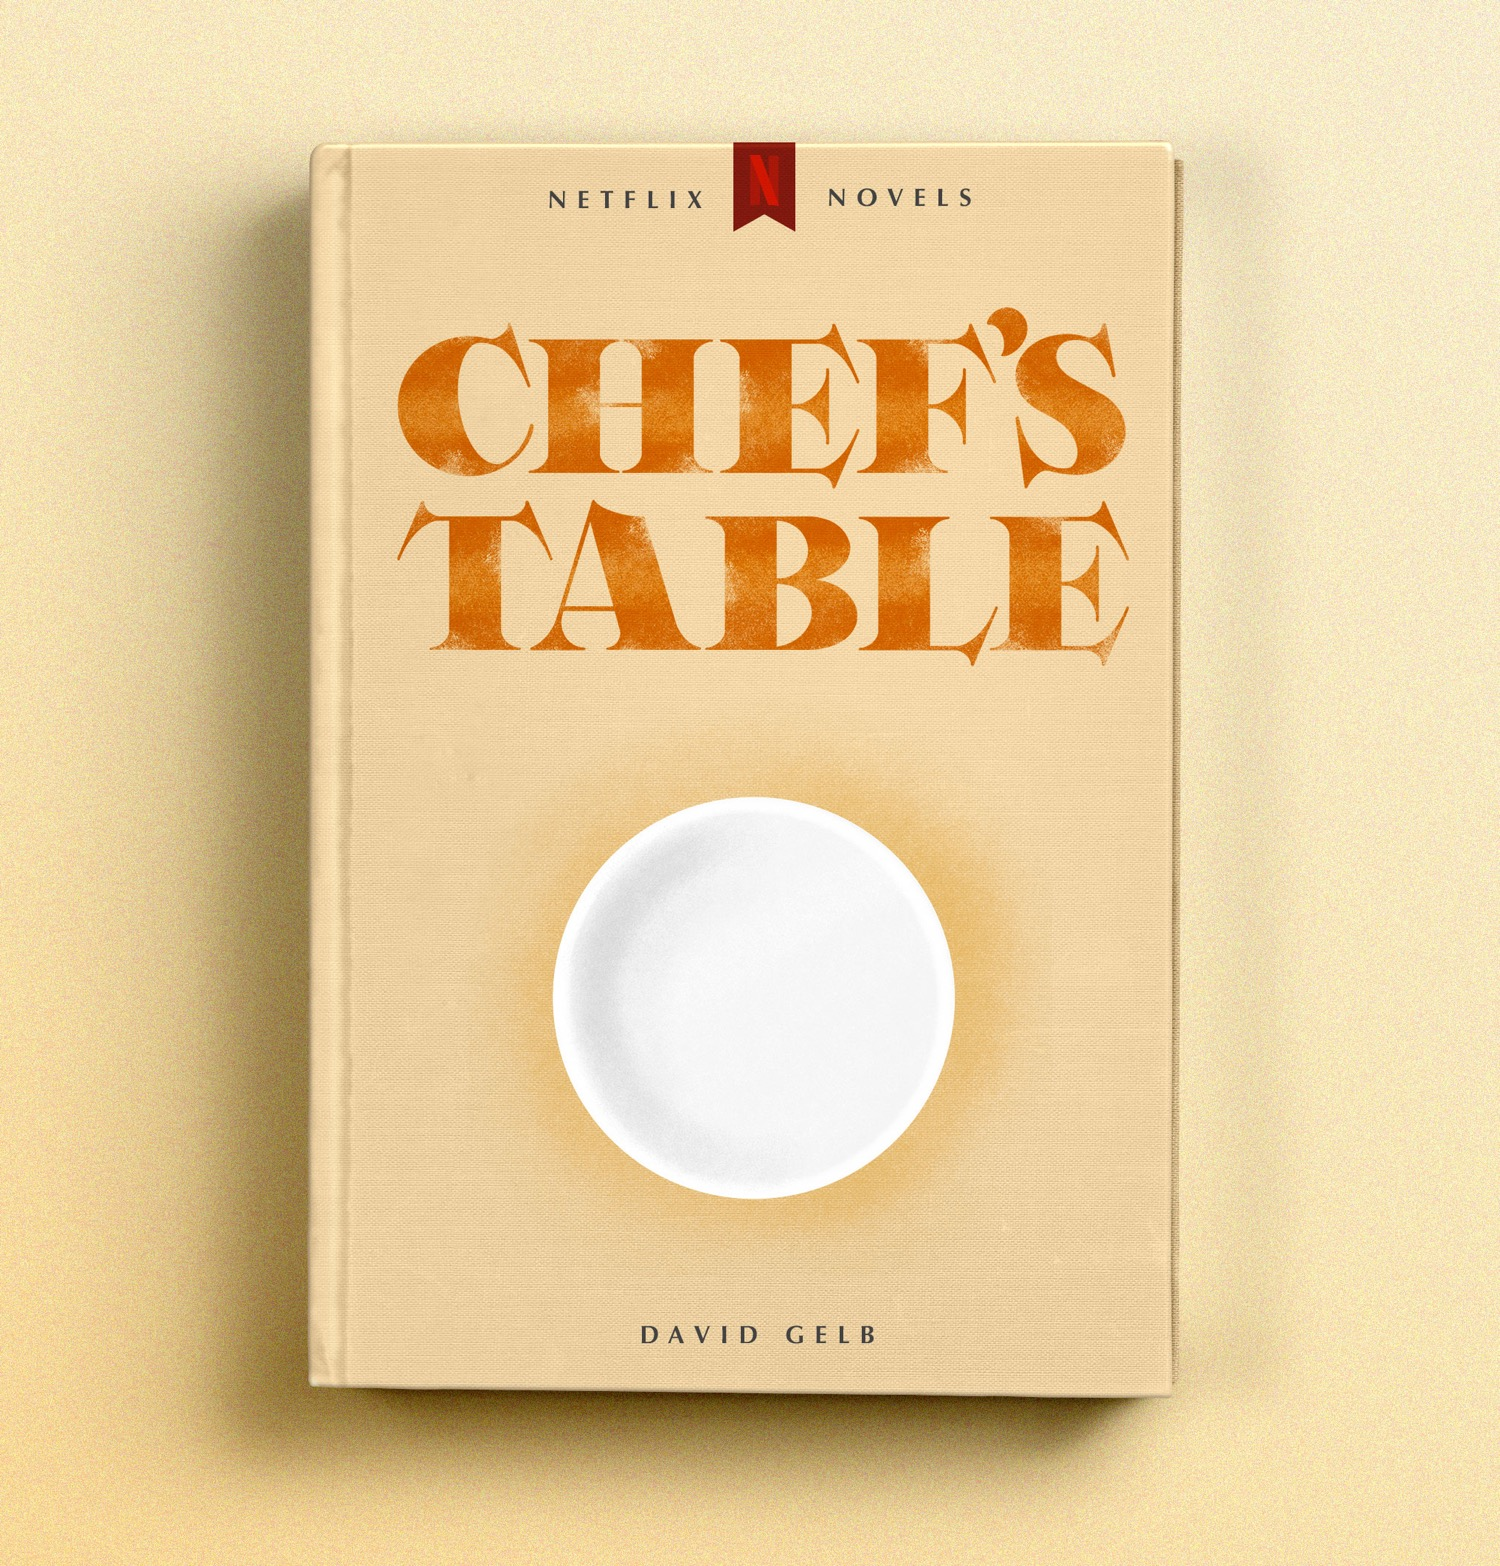 chefs table cover mockup